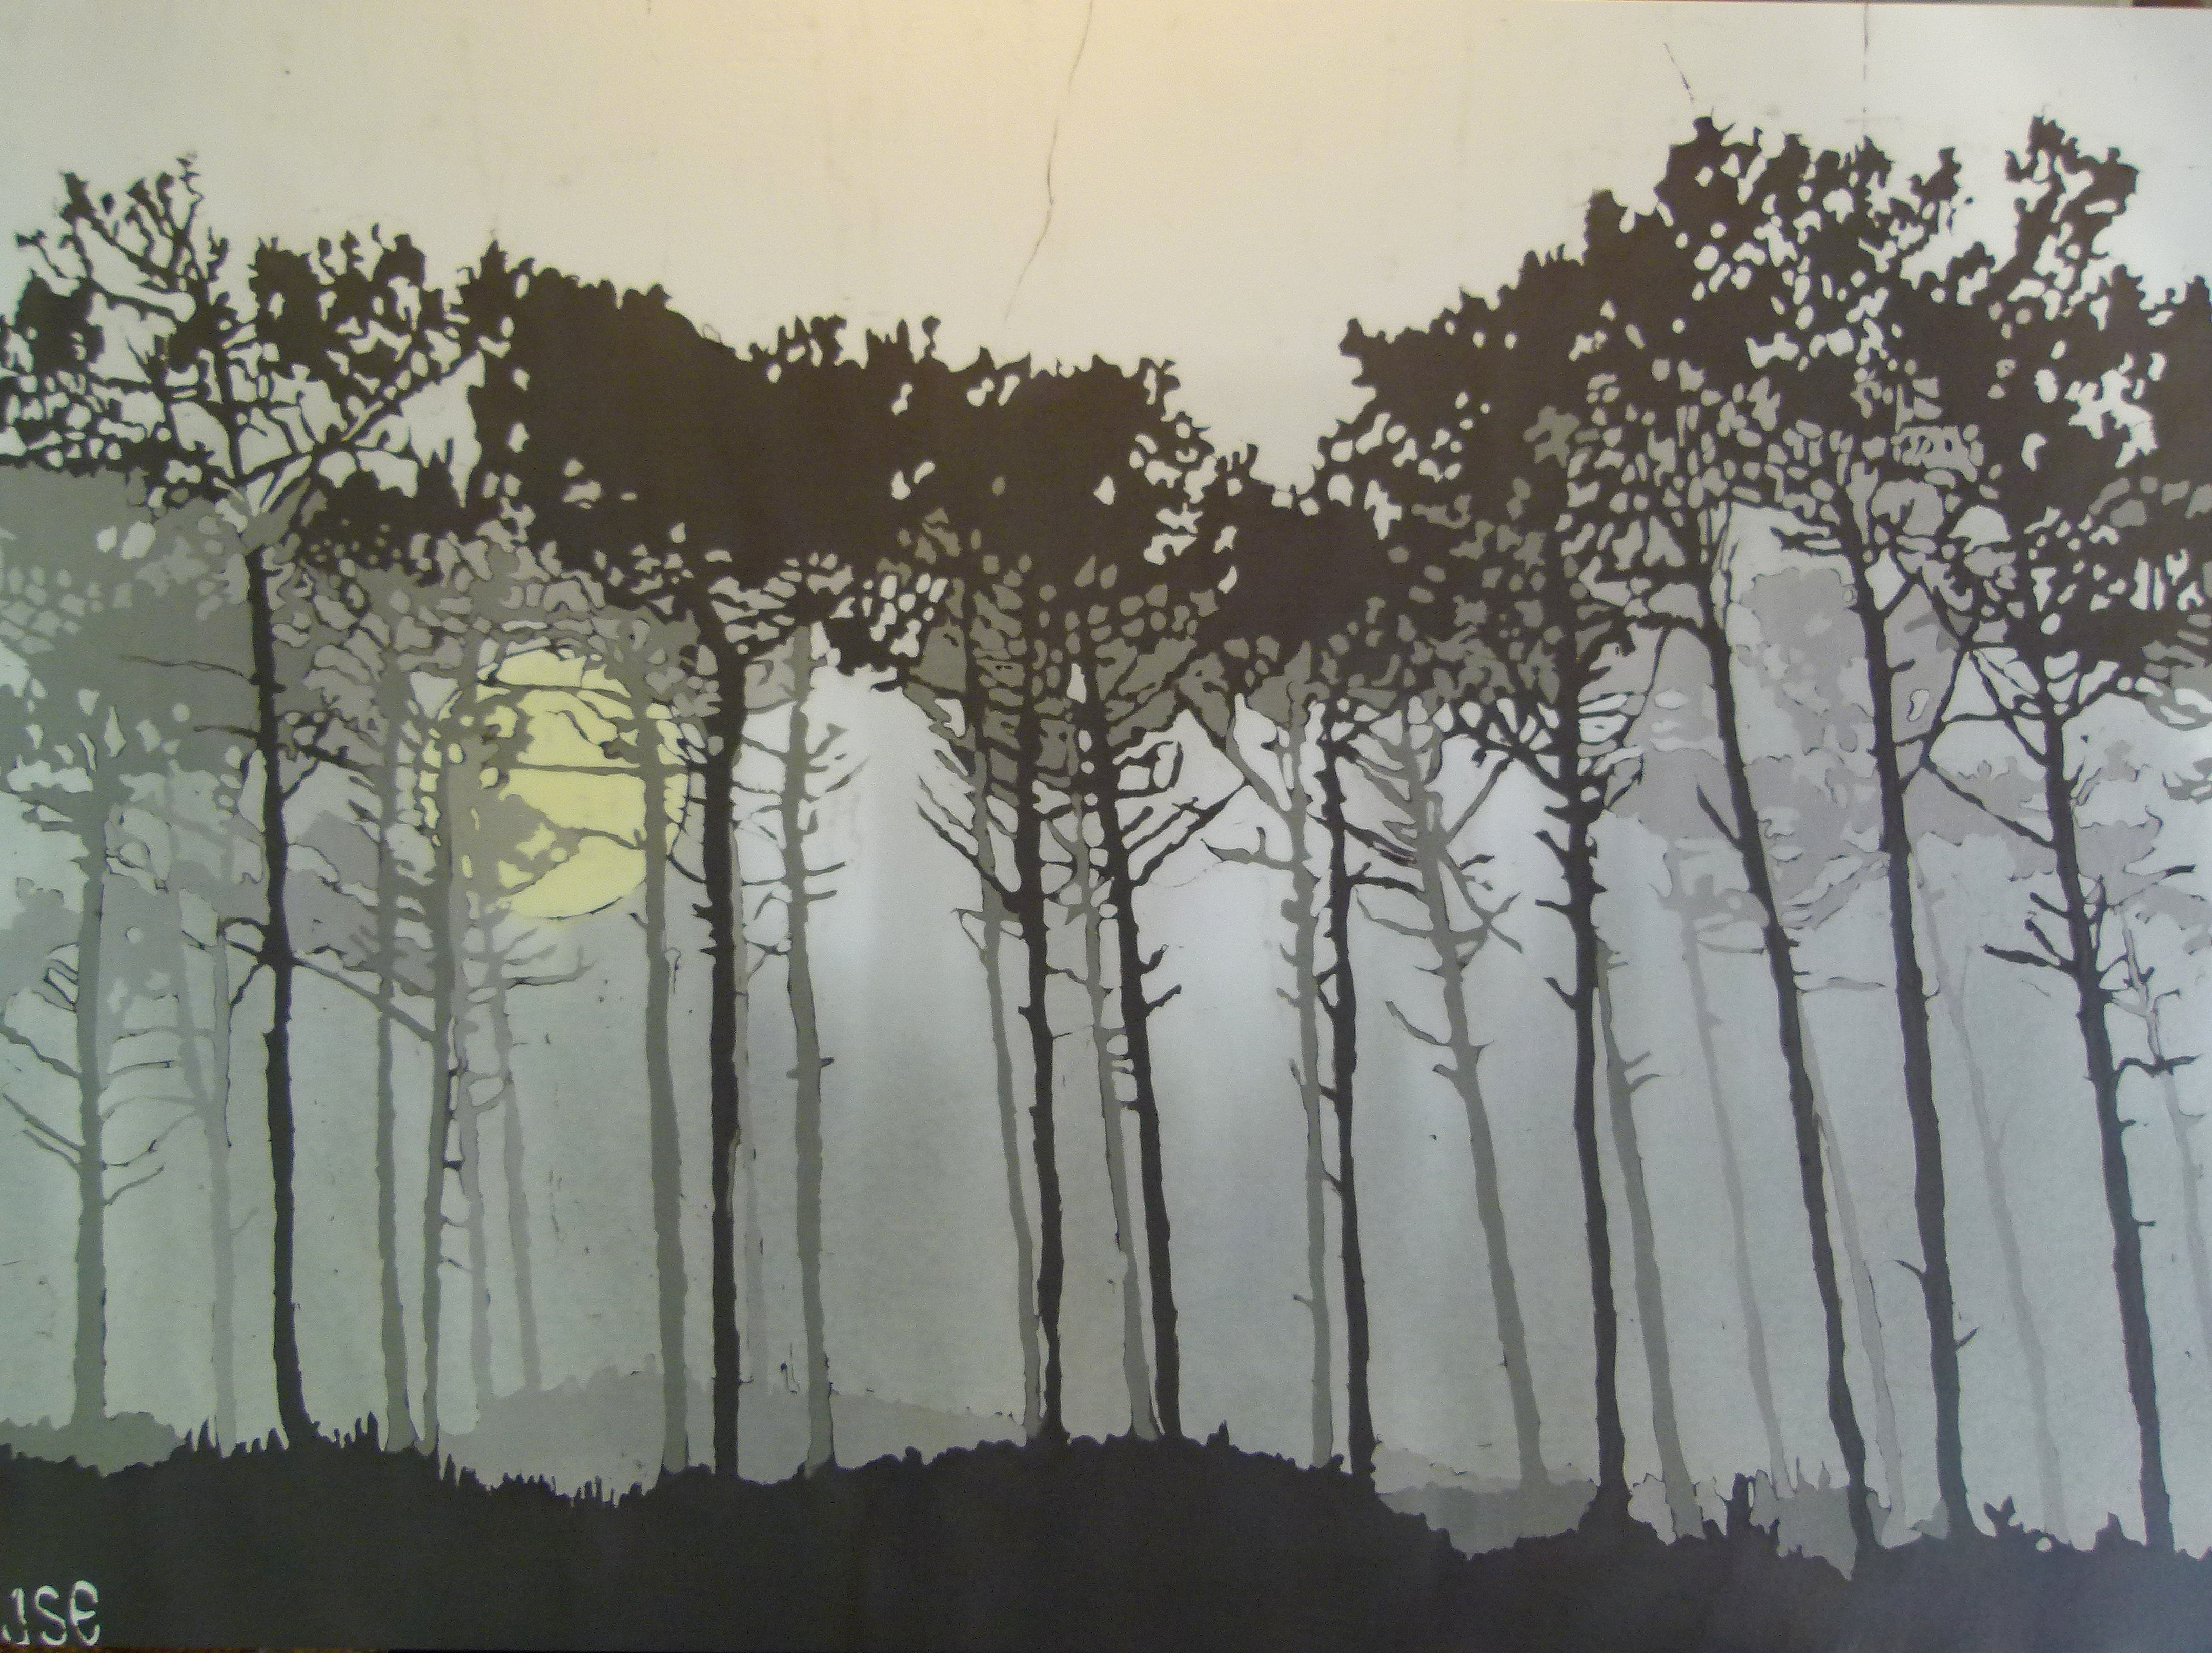 Trees in the Mist-Batik by Jonathan